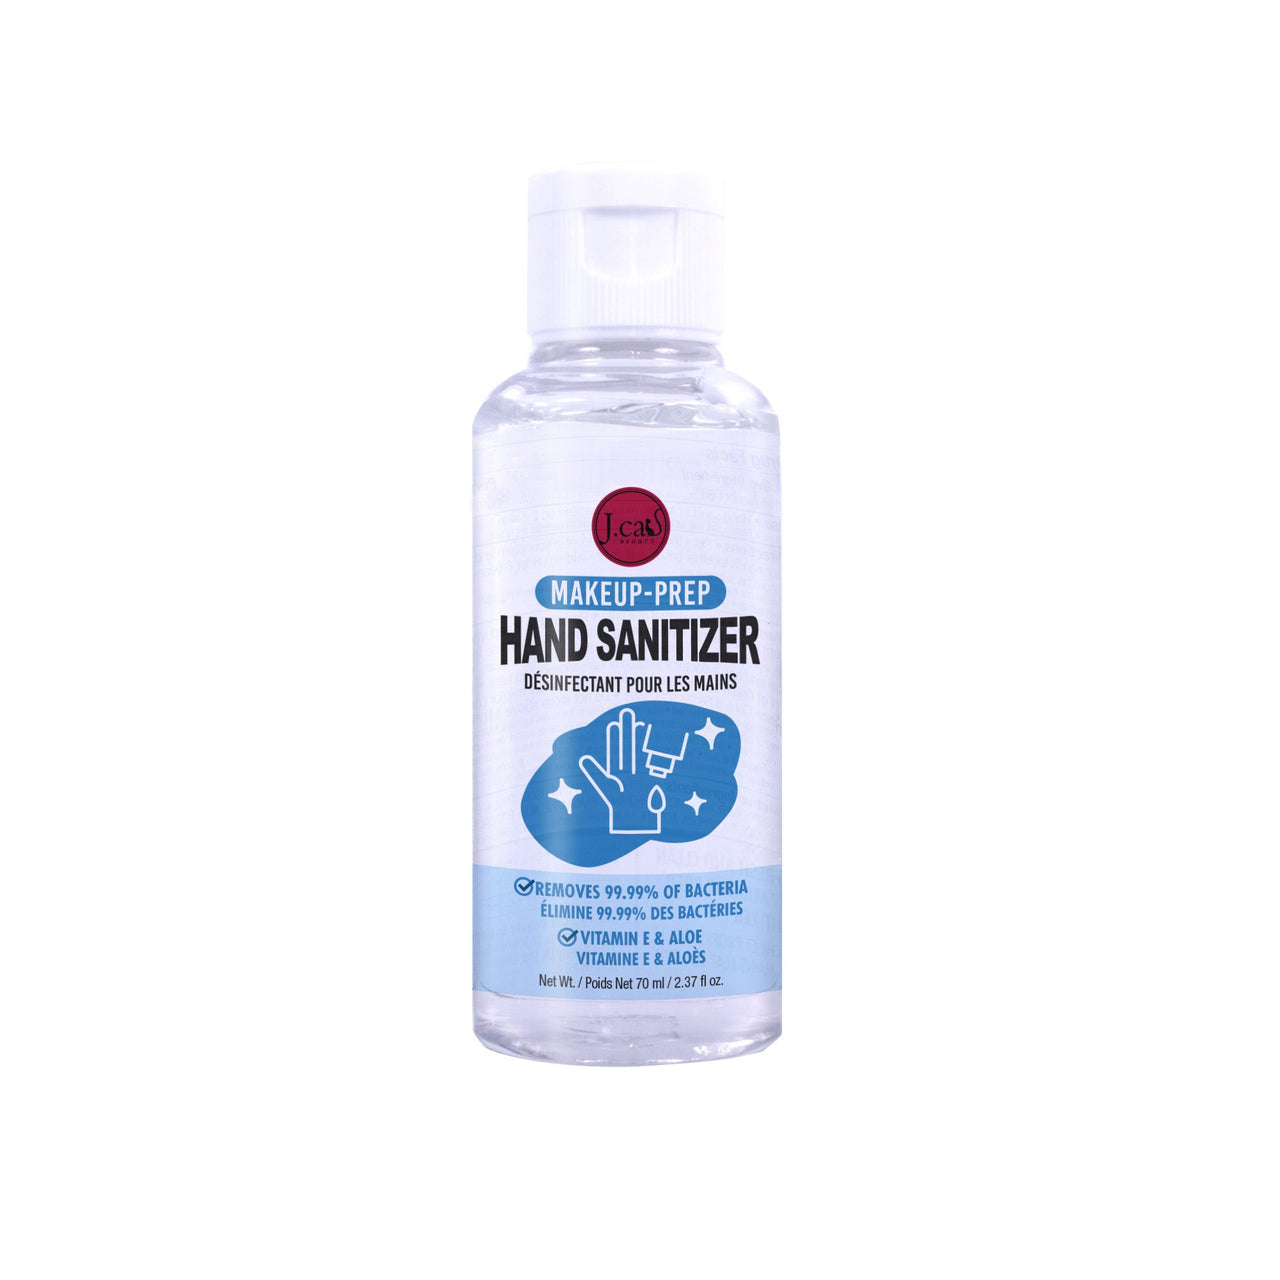 JC-PHS101 : Makeup-Prep Hand Sanitizer 1 DZ